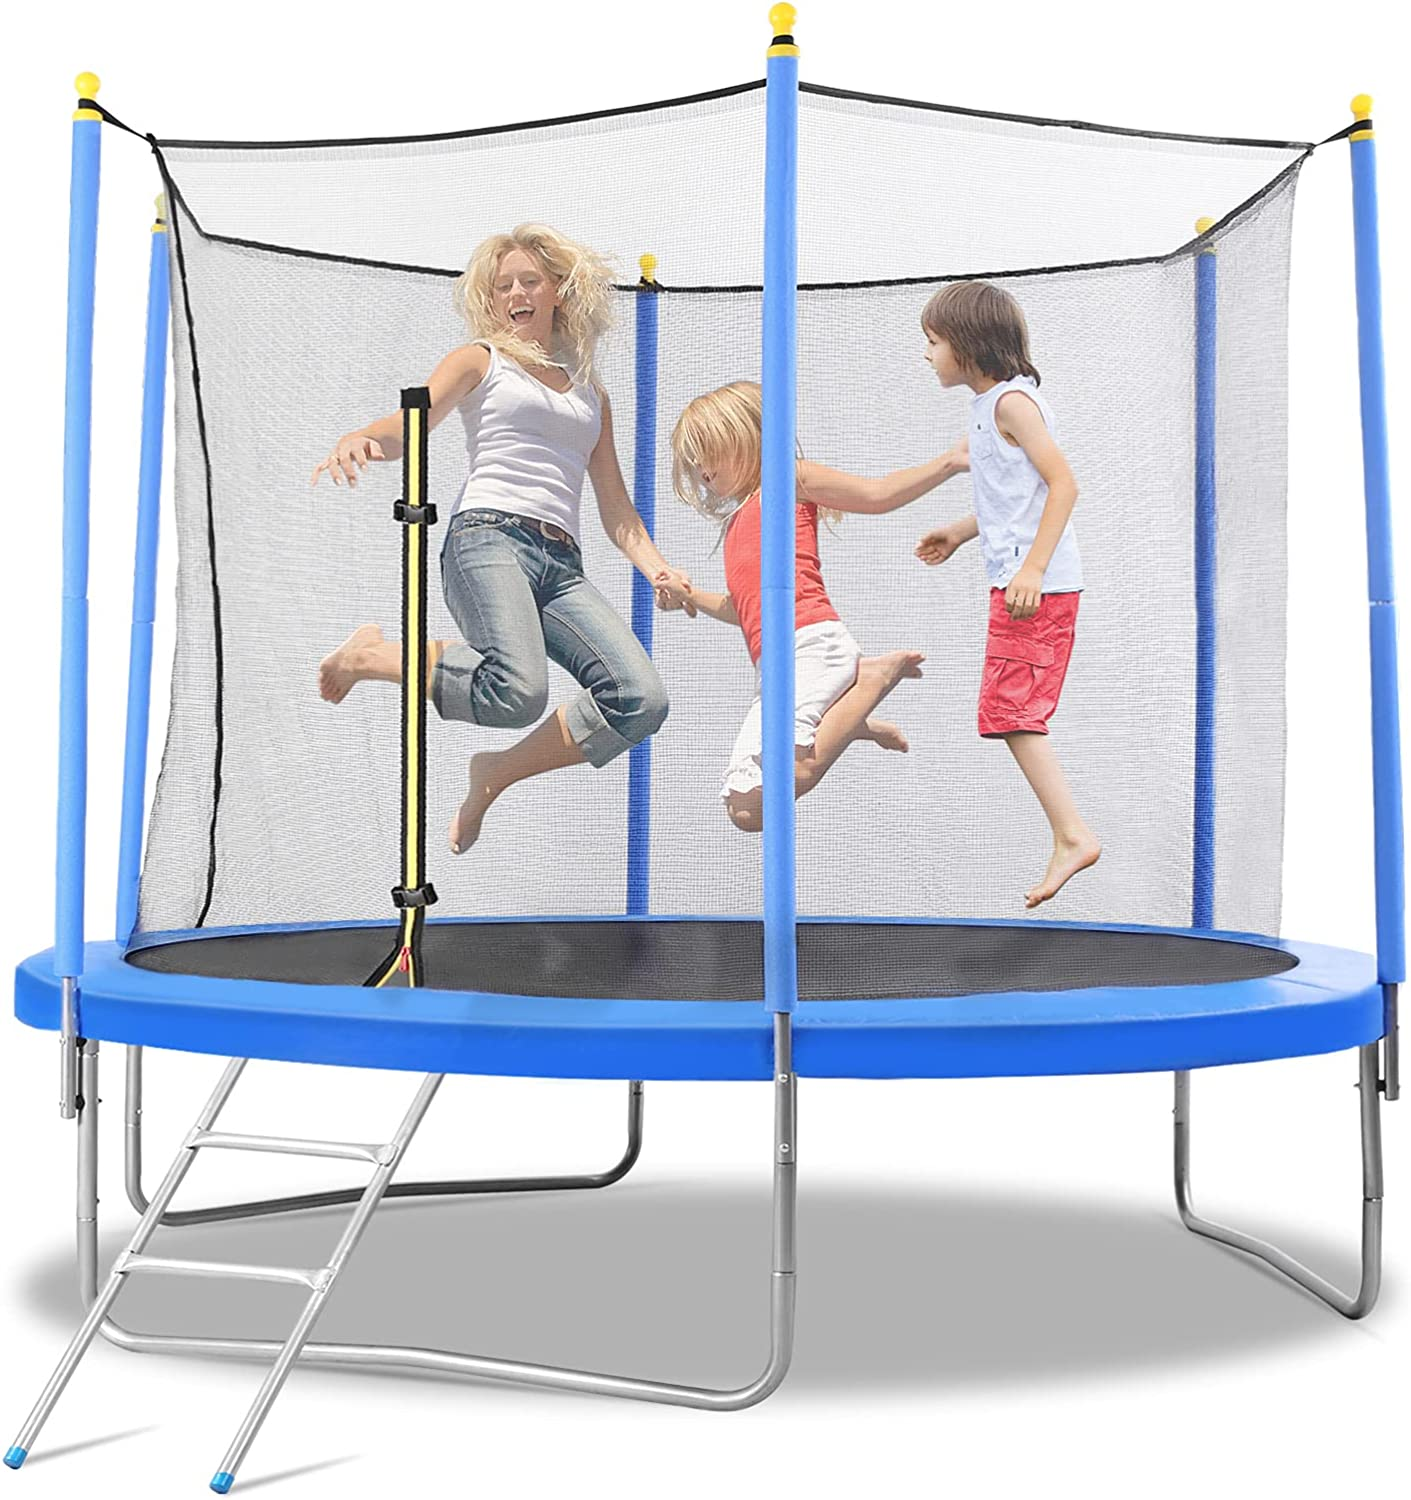 Popular overseas 10 FEET Rebounder with Enclosure - Outdoor All items free shipping Recreational Rebounde